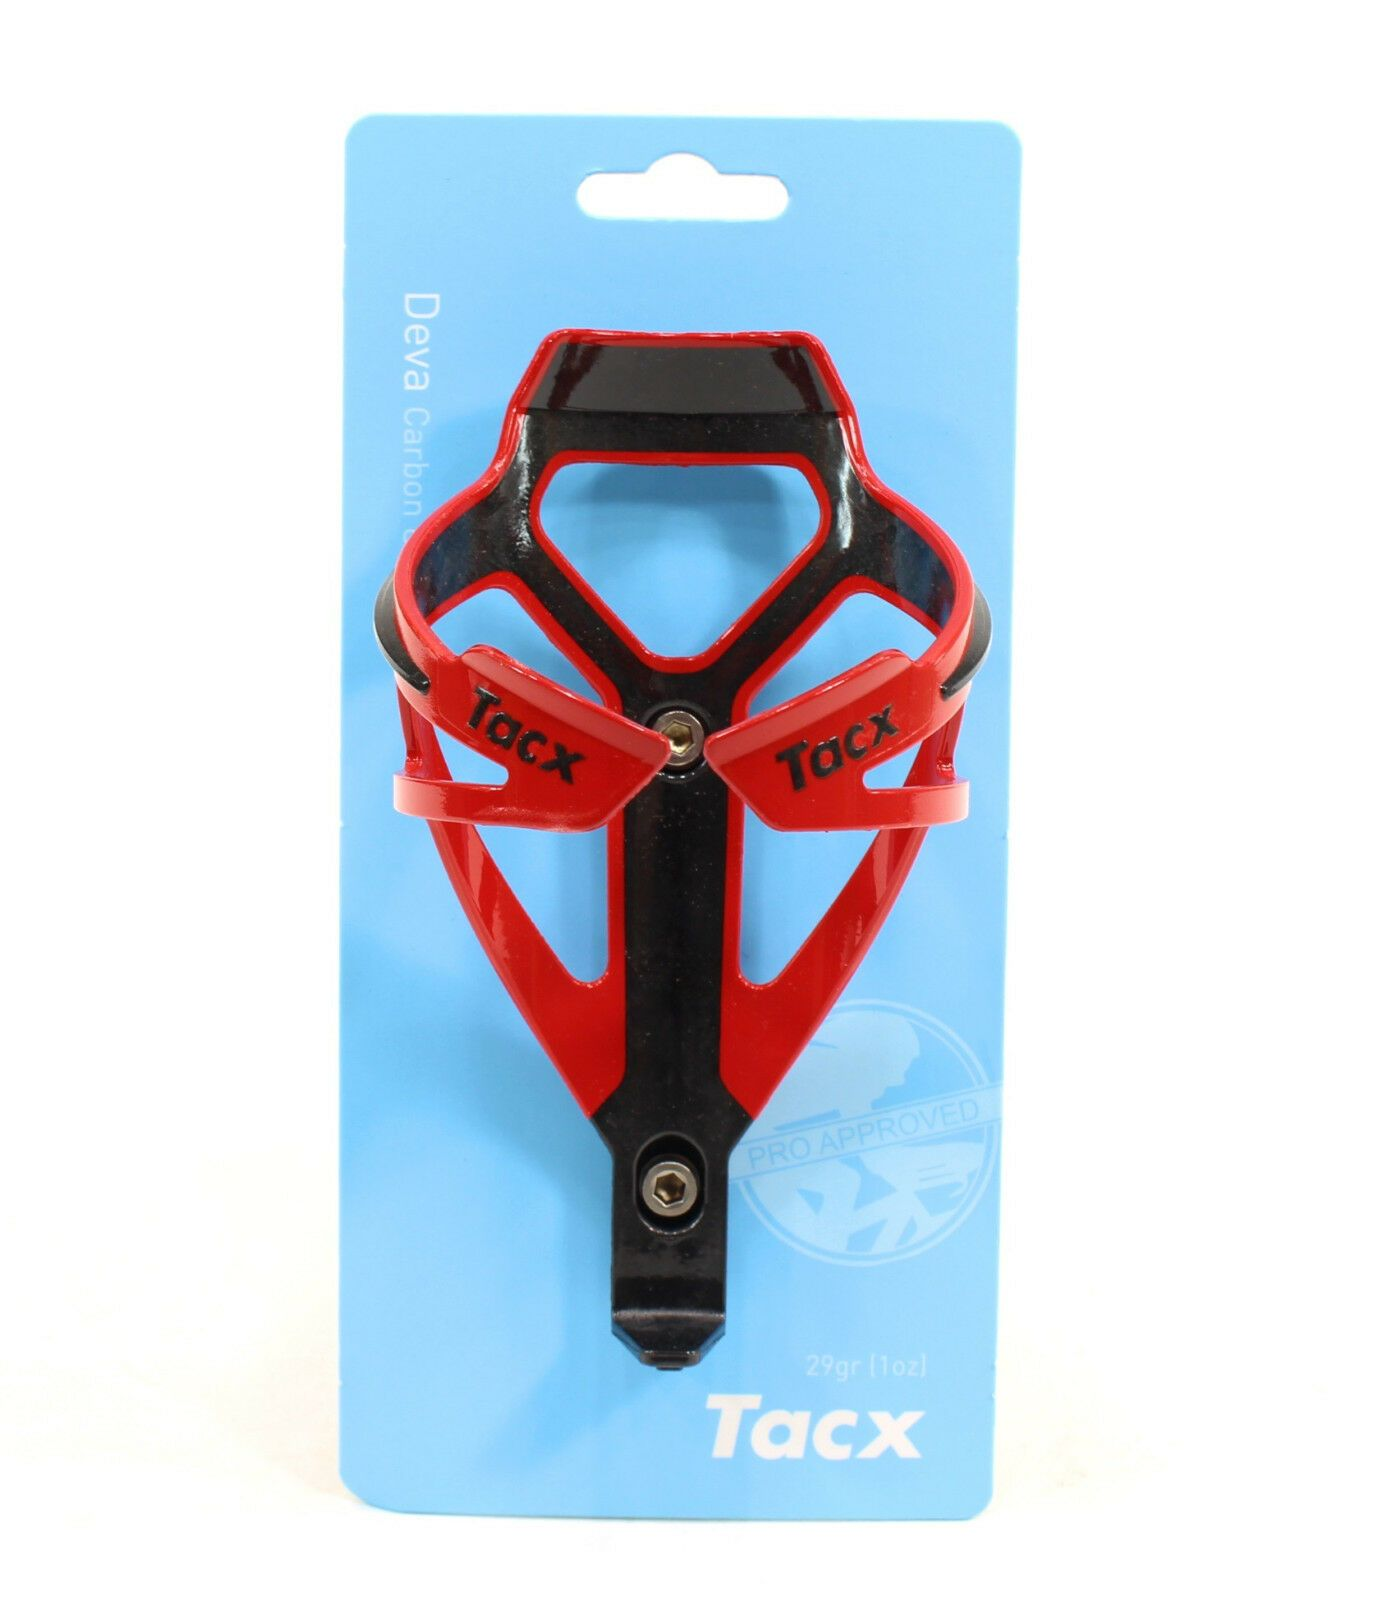 Black TACX Deva Bicycle Cycling Water Bottle Cage 29 Grams